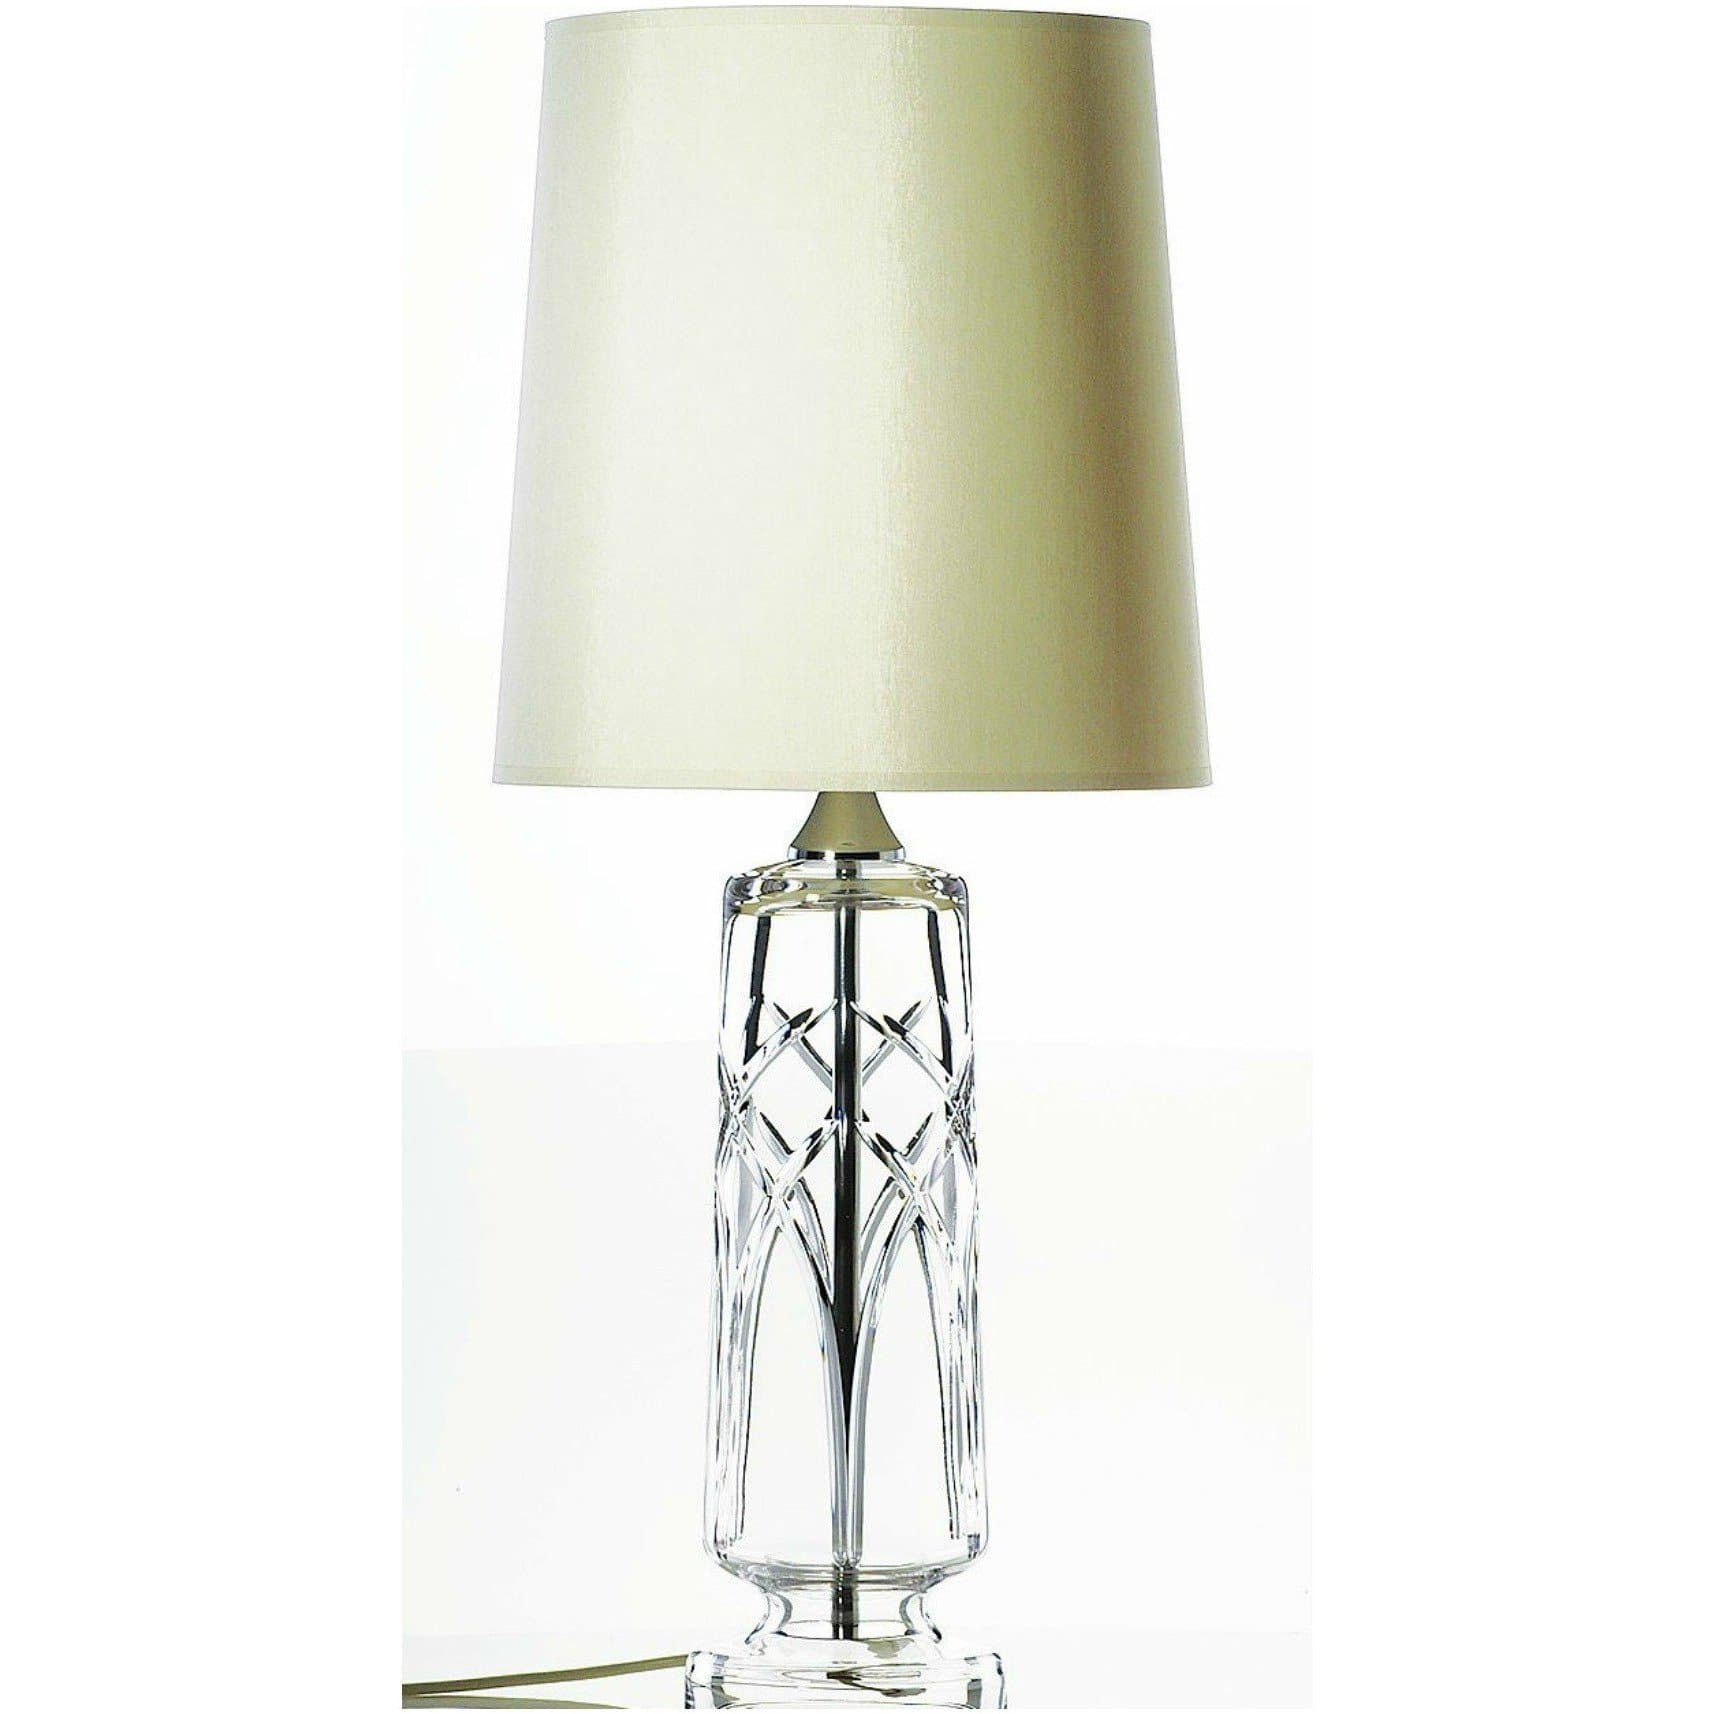 "Mystique 16"" Lamp & Shade (IRL/UK Fittings) (CL316) - Galway Irish Crystal"